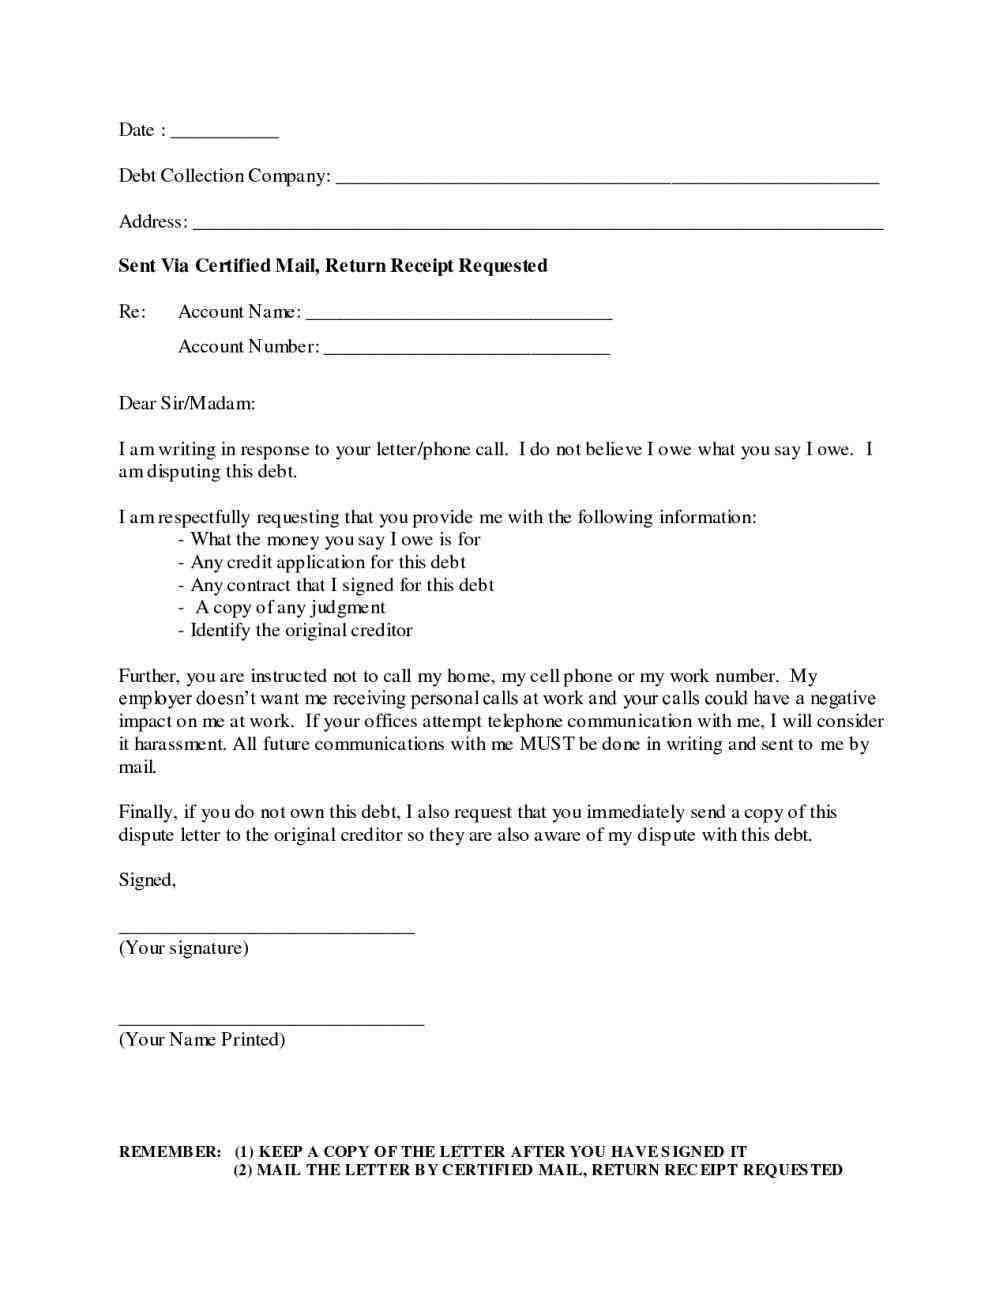 Debt Collection Template Letter Free - How to Write A Dispute Letter Debt Collector